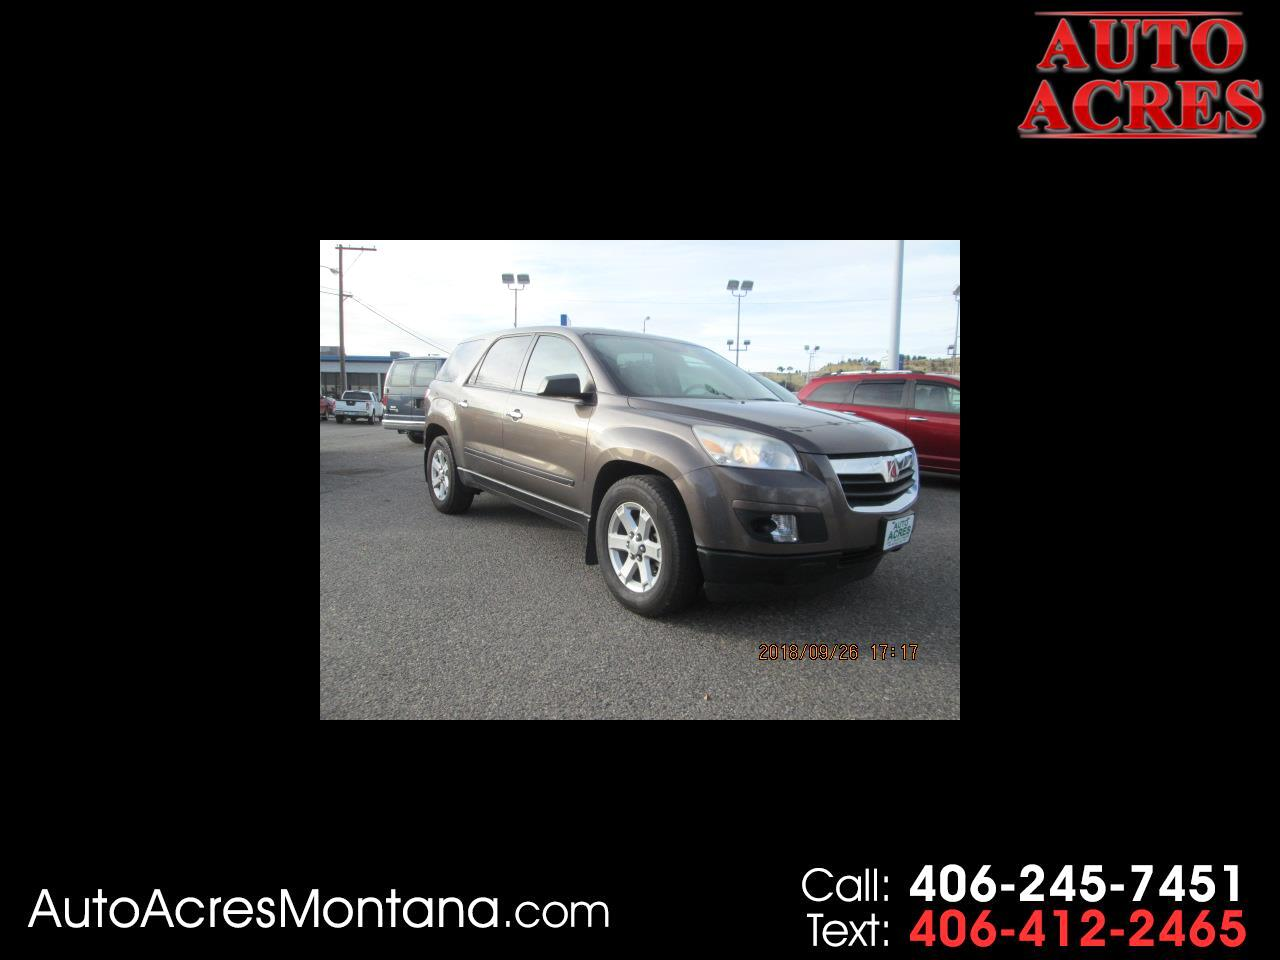 2008 Saturn Outlook AWD 4dr XE